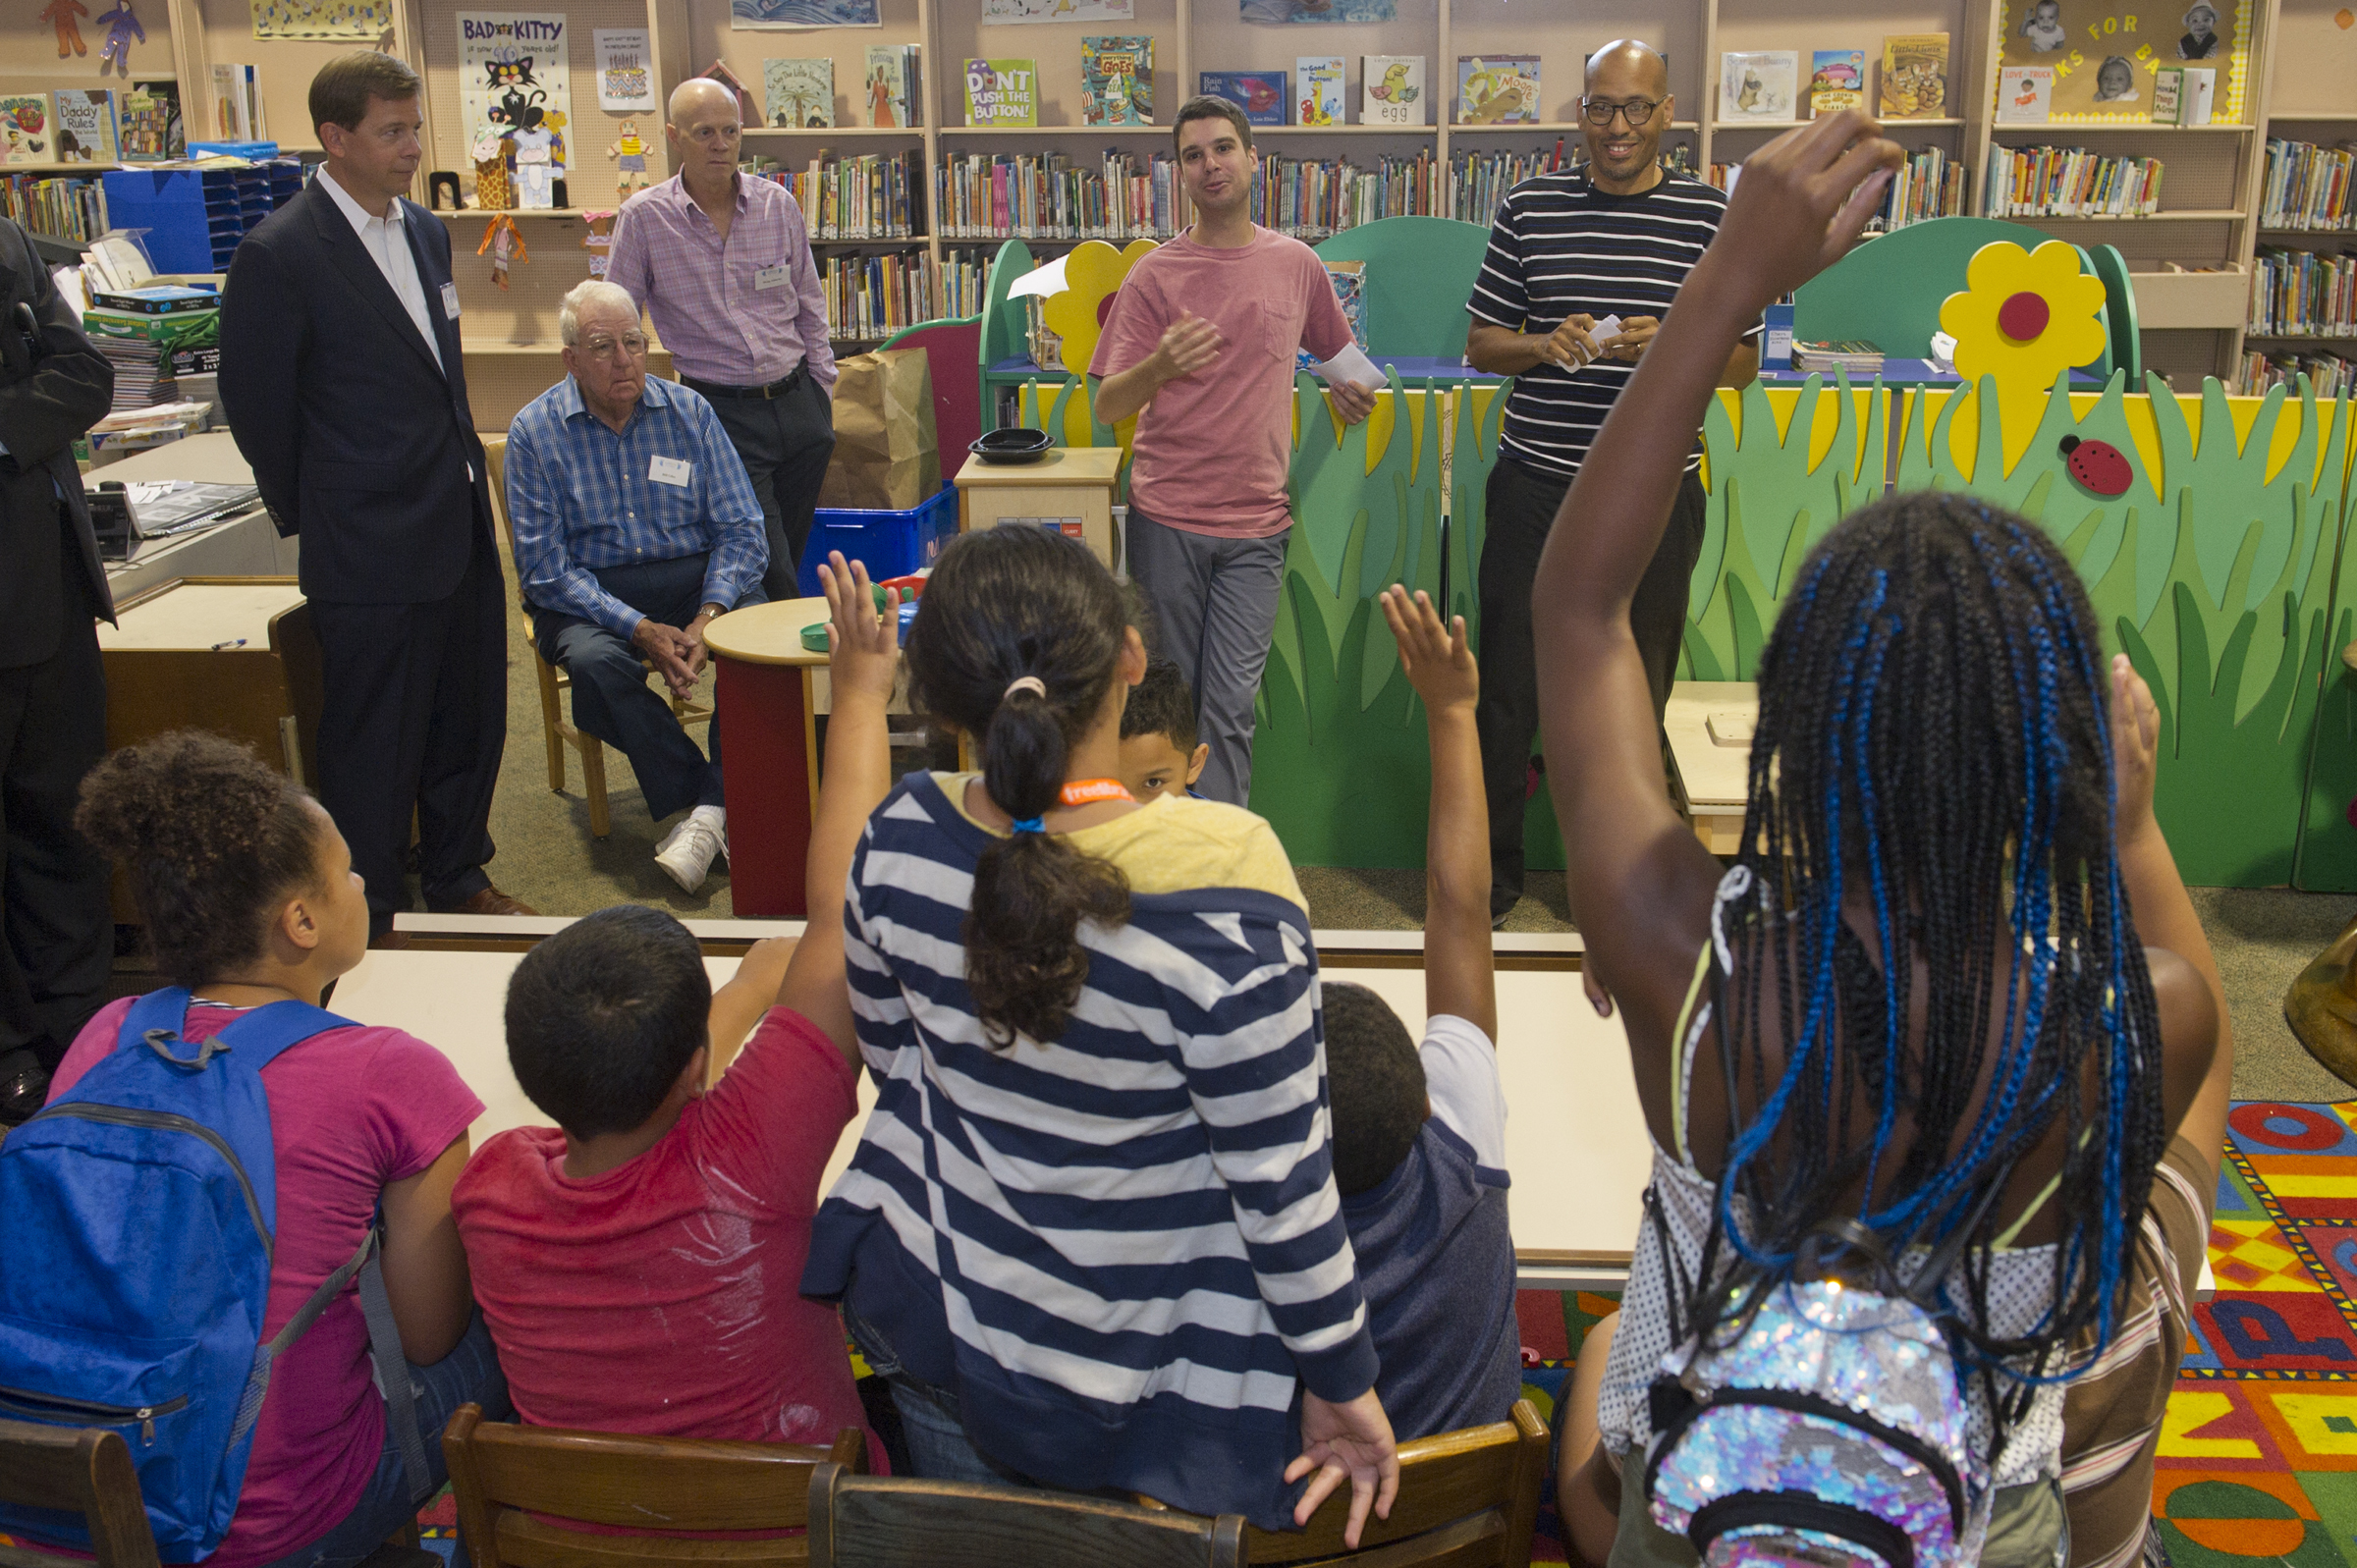 August 15, 2017 -- CADE counselors Perry Mattero (left center, back) and Tony Smith (right, back) lead a discussion during a summer reading program for local kids at the McPherson Square Library in Kensington Tuesday. CADE, a local organization presents the program which encourages addiction prevention and healthy decision making. (Avi Steinhardt/ For the Philadelphia Inquirer)